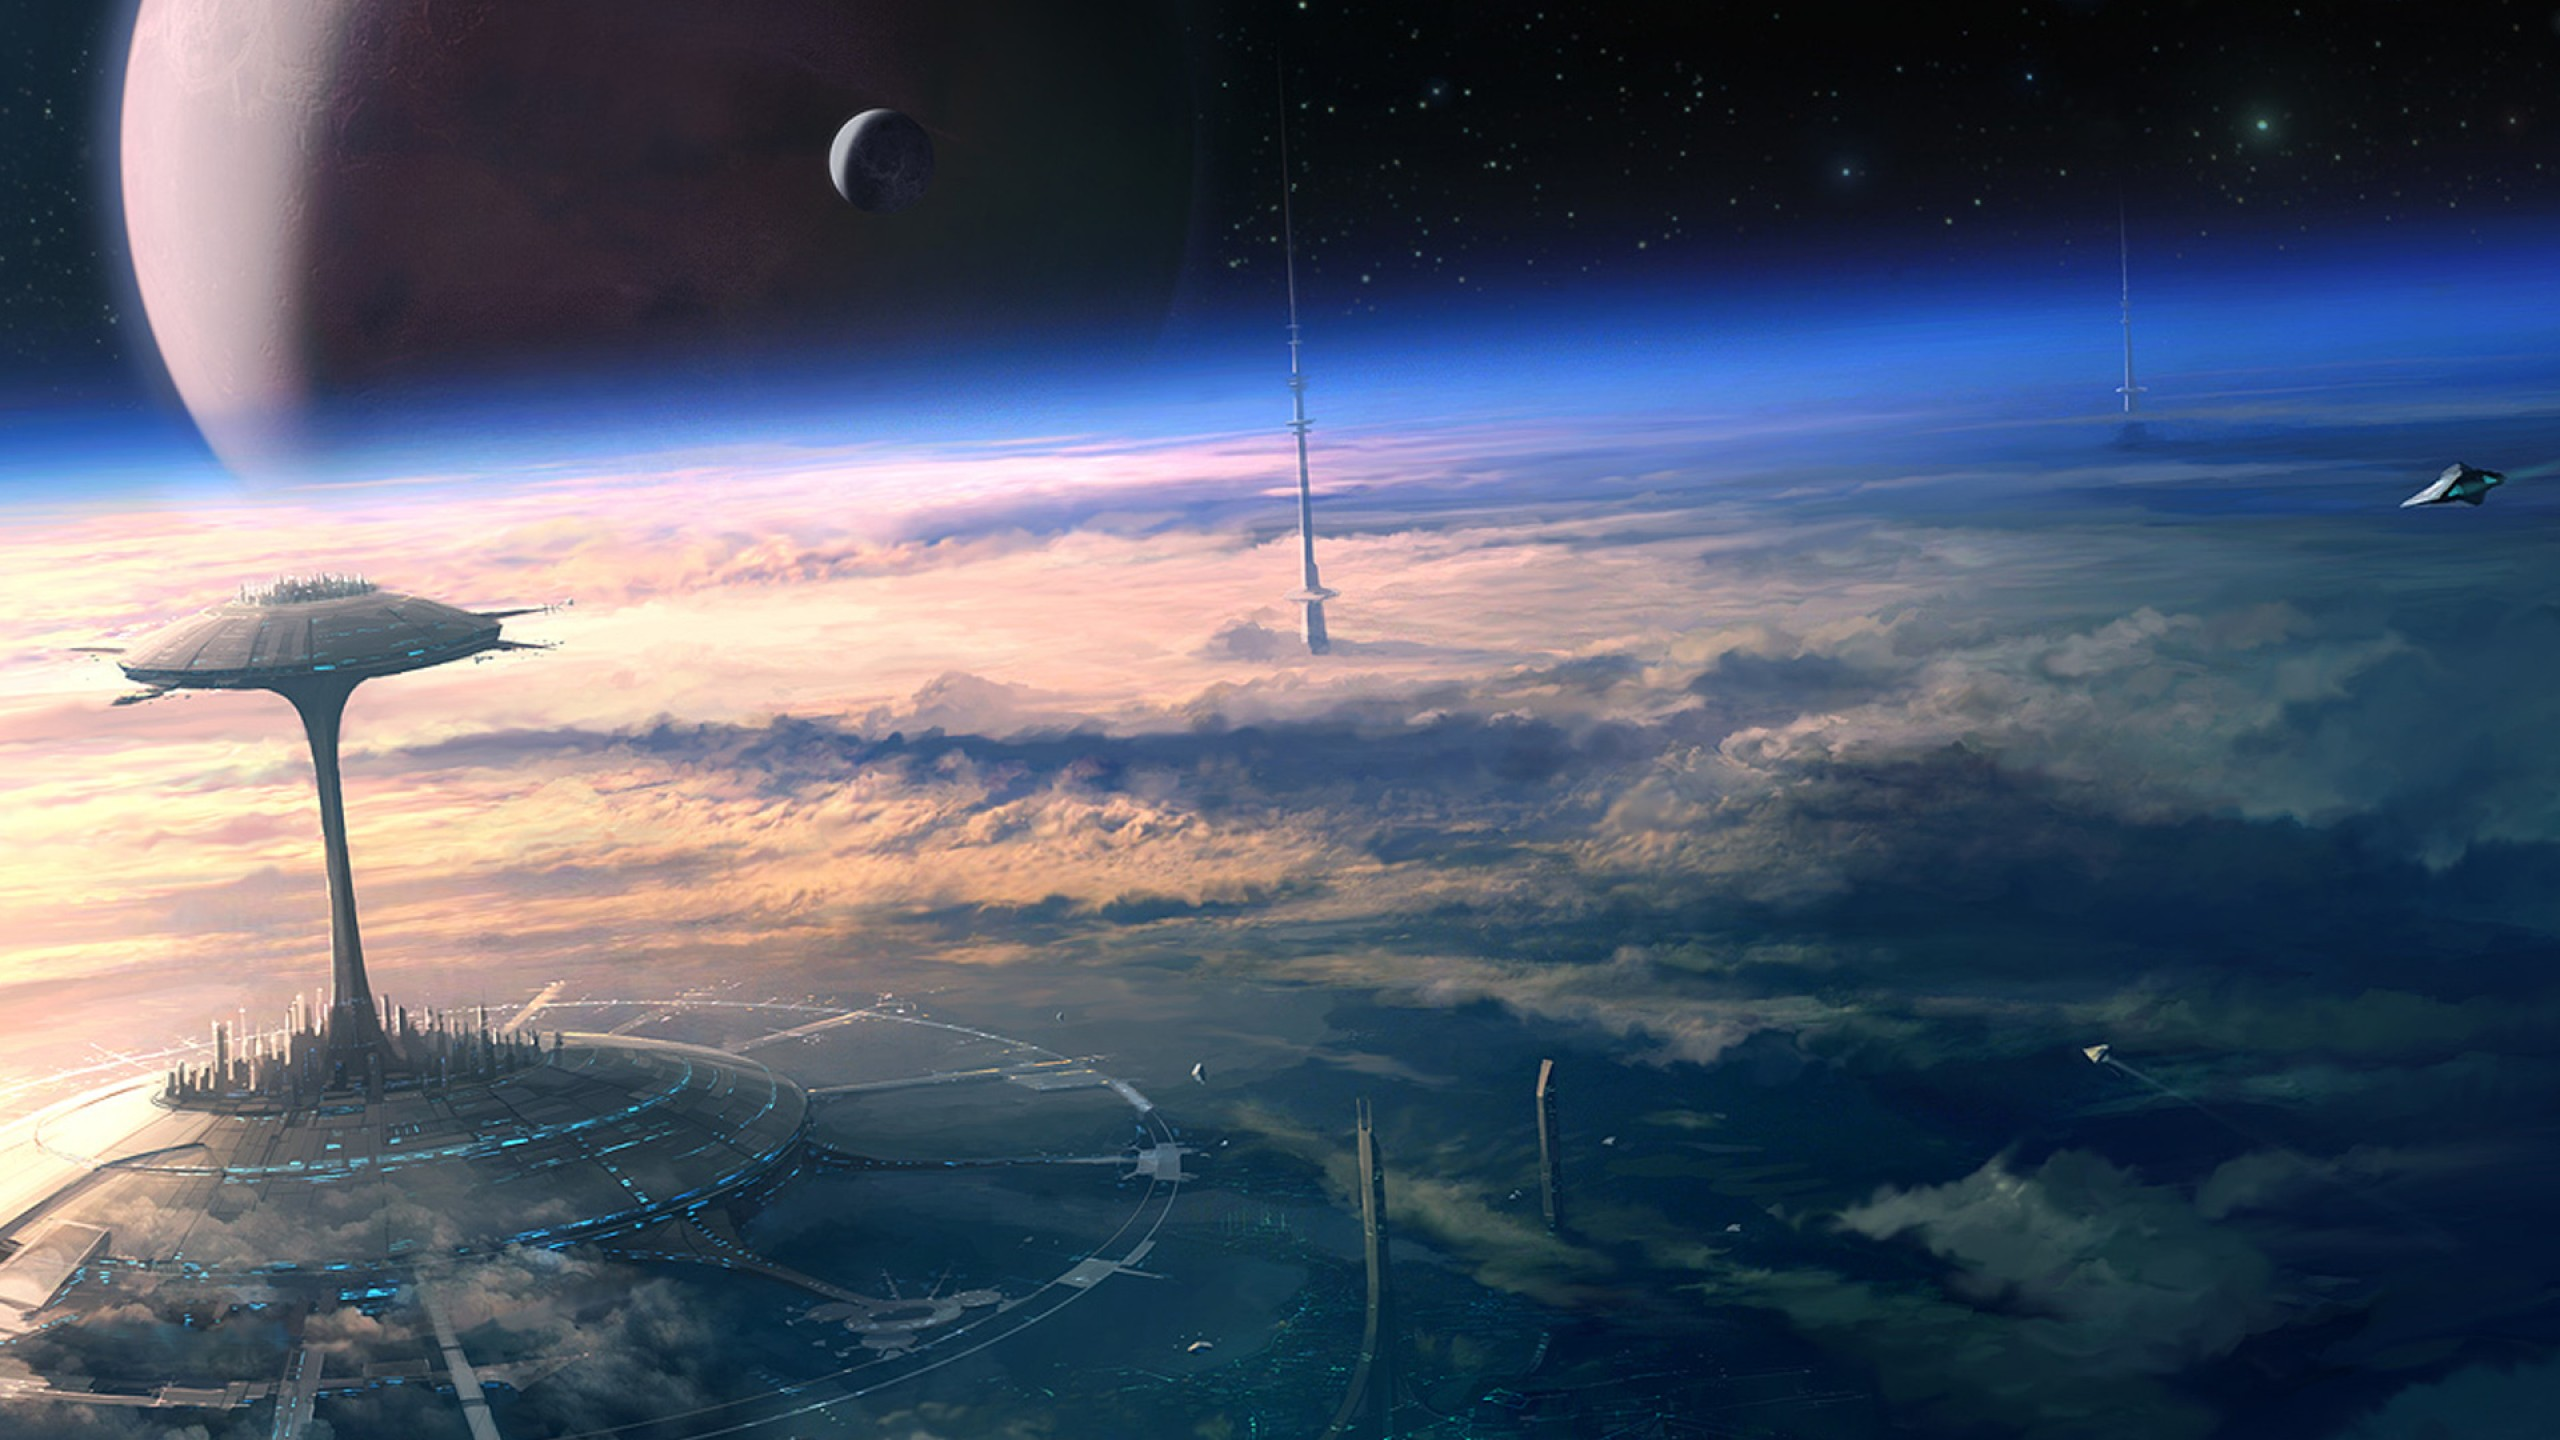 Fantasy Sci Fi Wallpaper